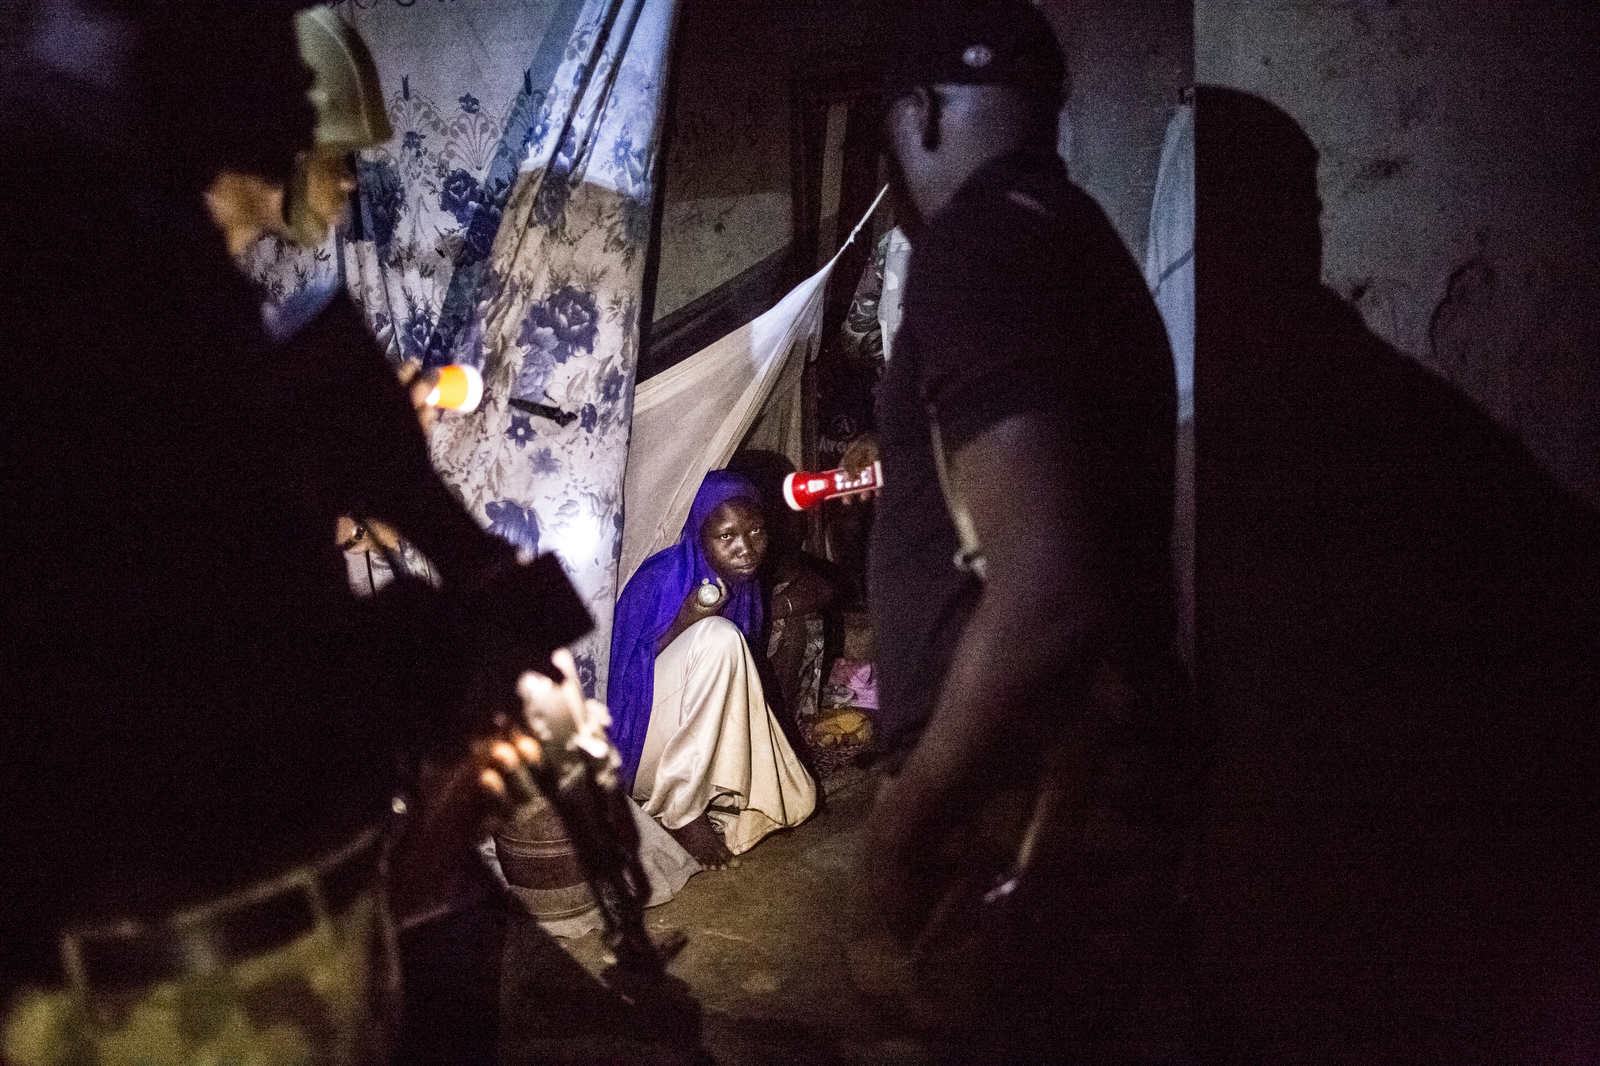 A young woman looks up at a solider who is checking her house for insurgents, weapons or other illicit goods during a cordon and search exercise after a suicide bombing on the outskirts of Maiduguri.